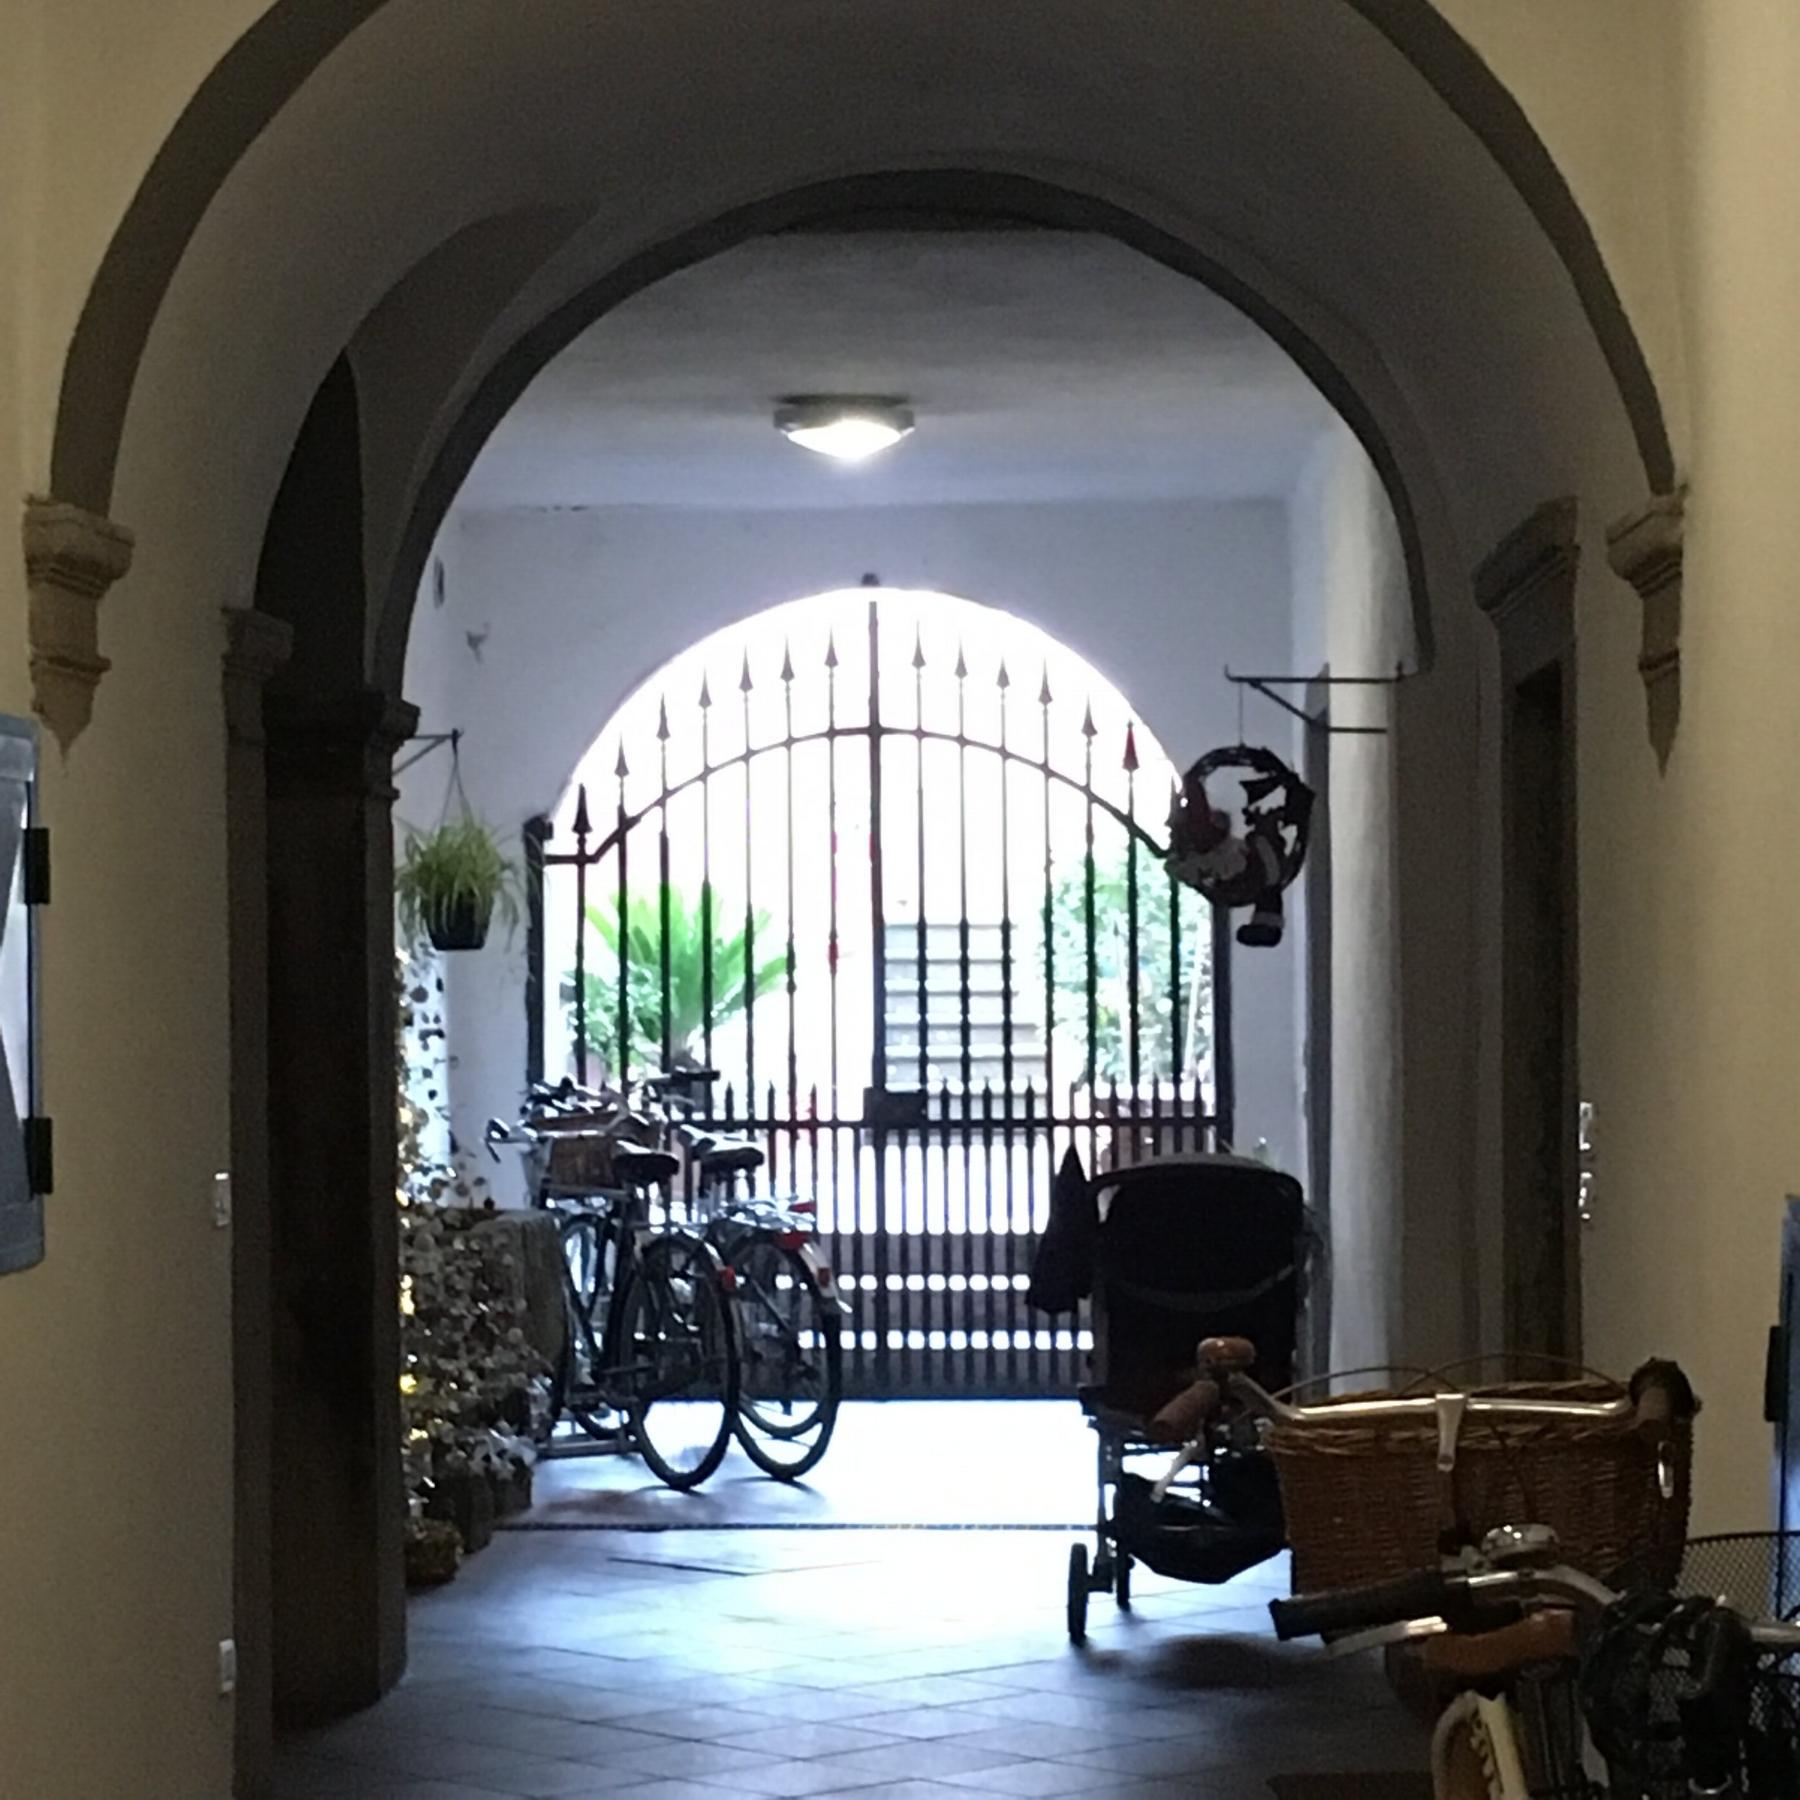 Entry to apartment on Via Pelleria, just inside the front door, with a pretty private garden beyond the gates.